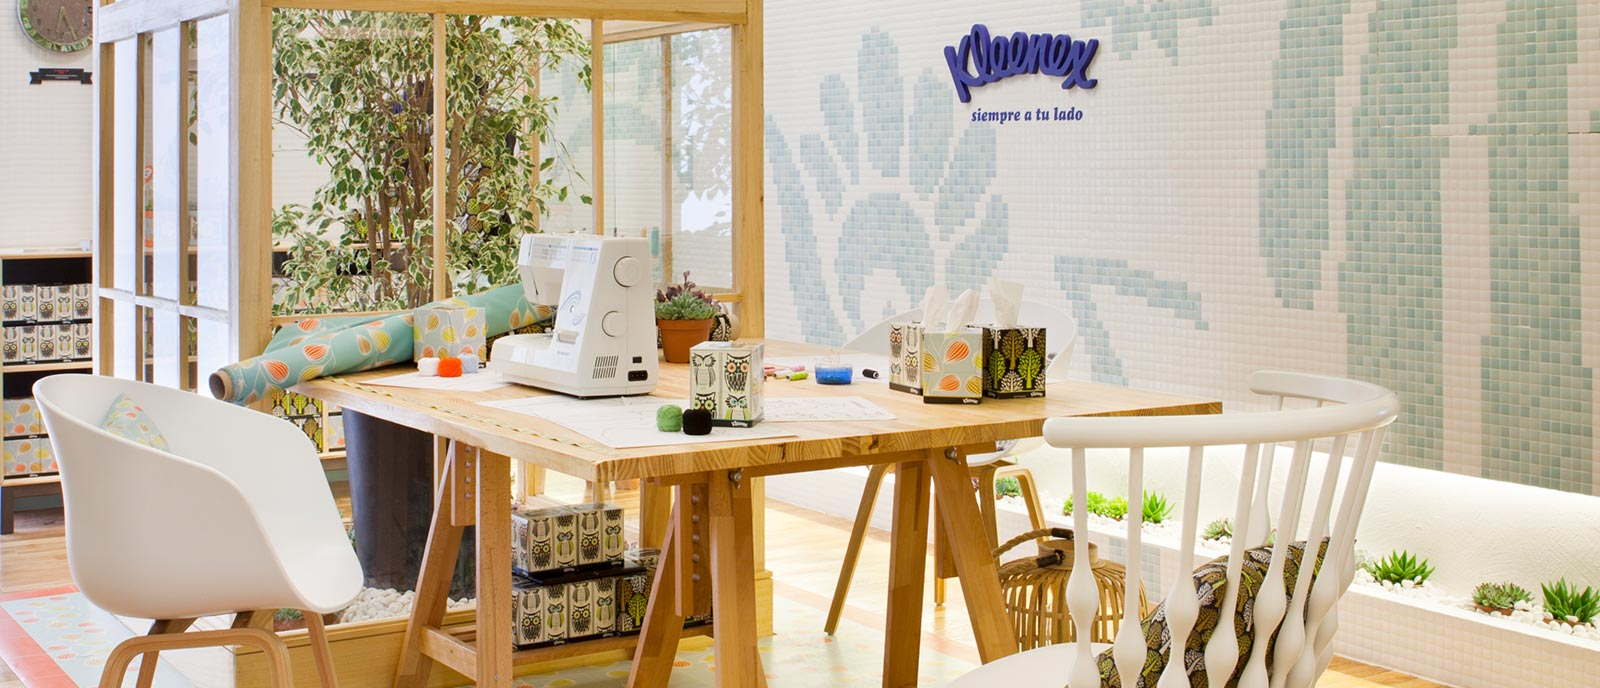 "Taller de costura – ""Kleneex eco-Decor"""